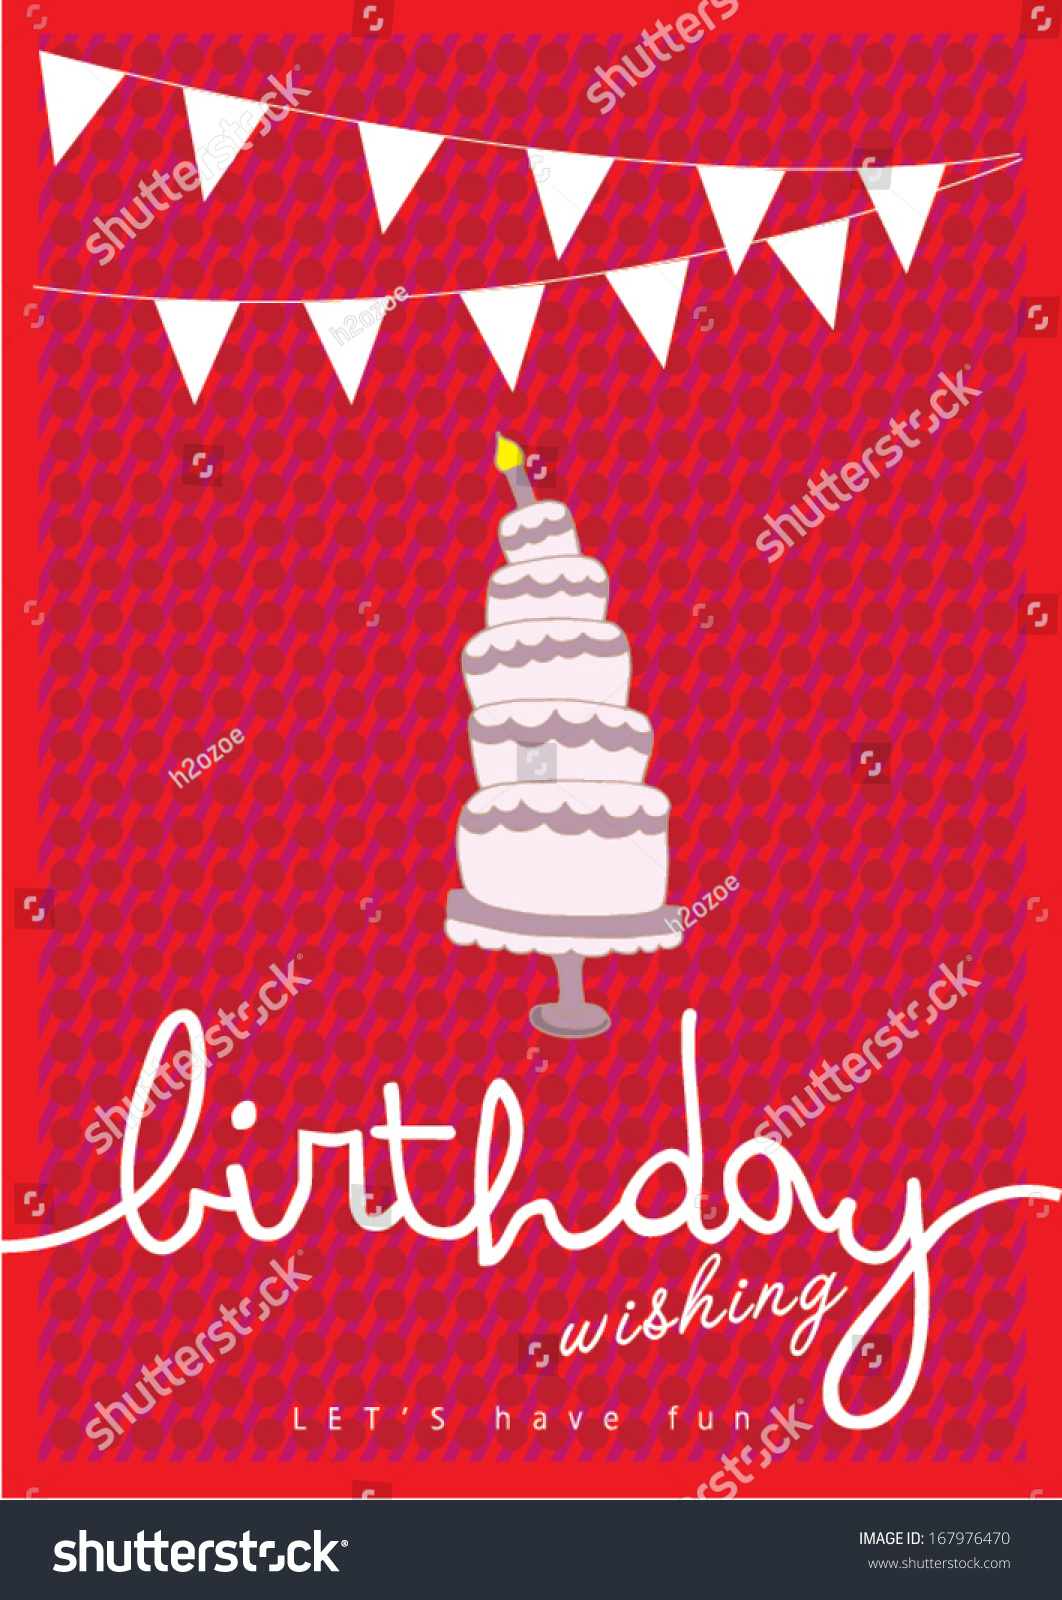 Happy Birthday Poster Template Vectorillustration Layout – Birthday Card Layout